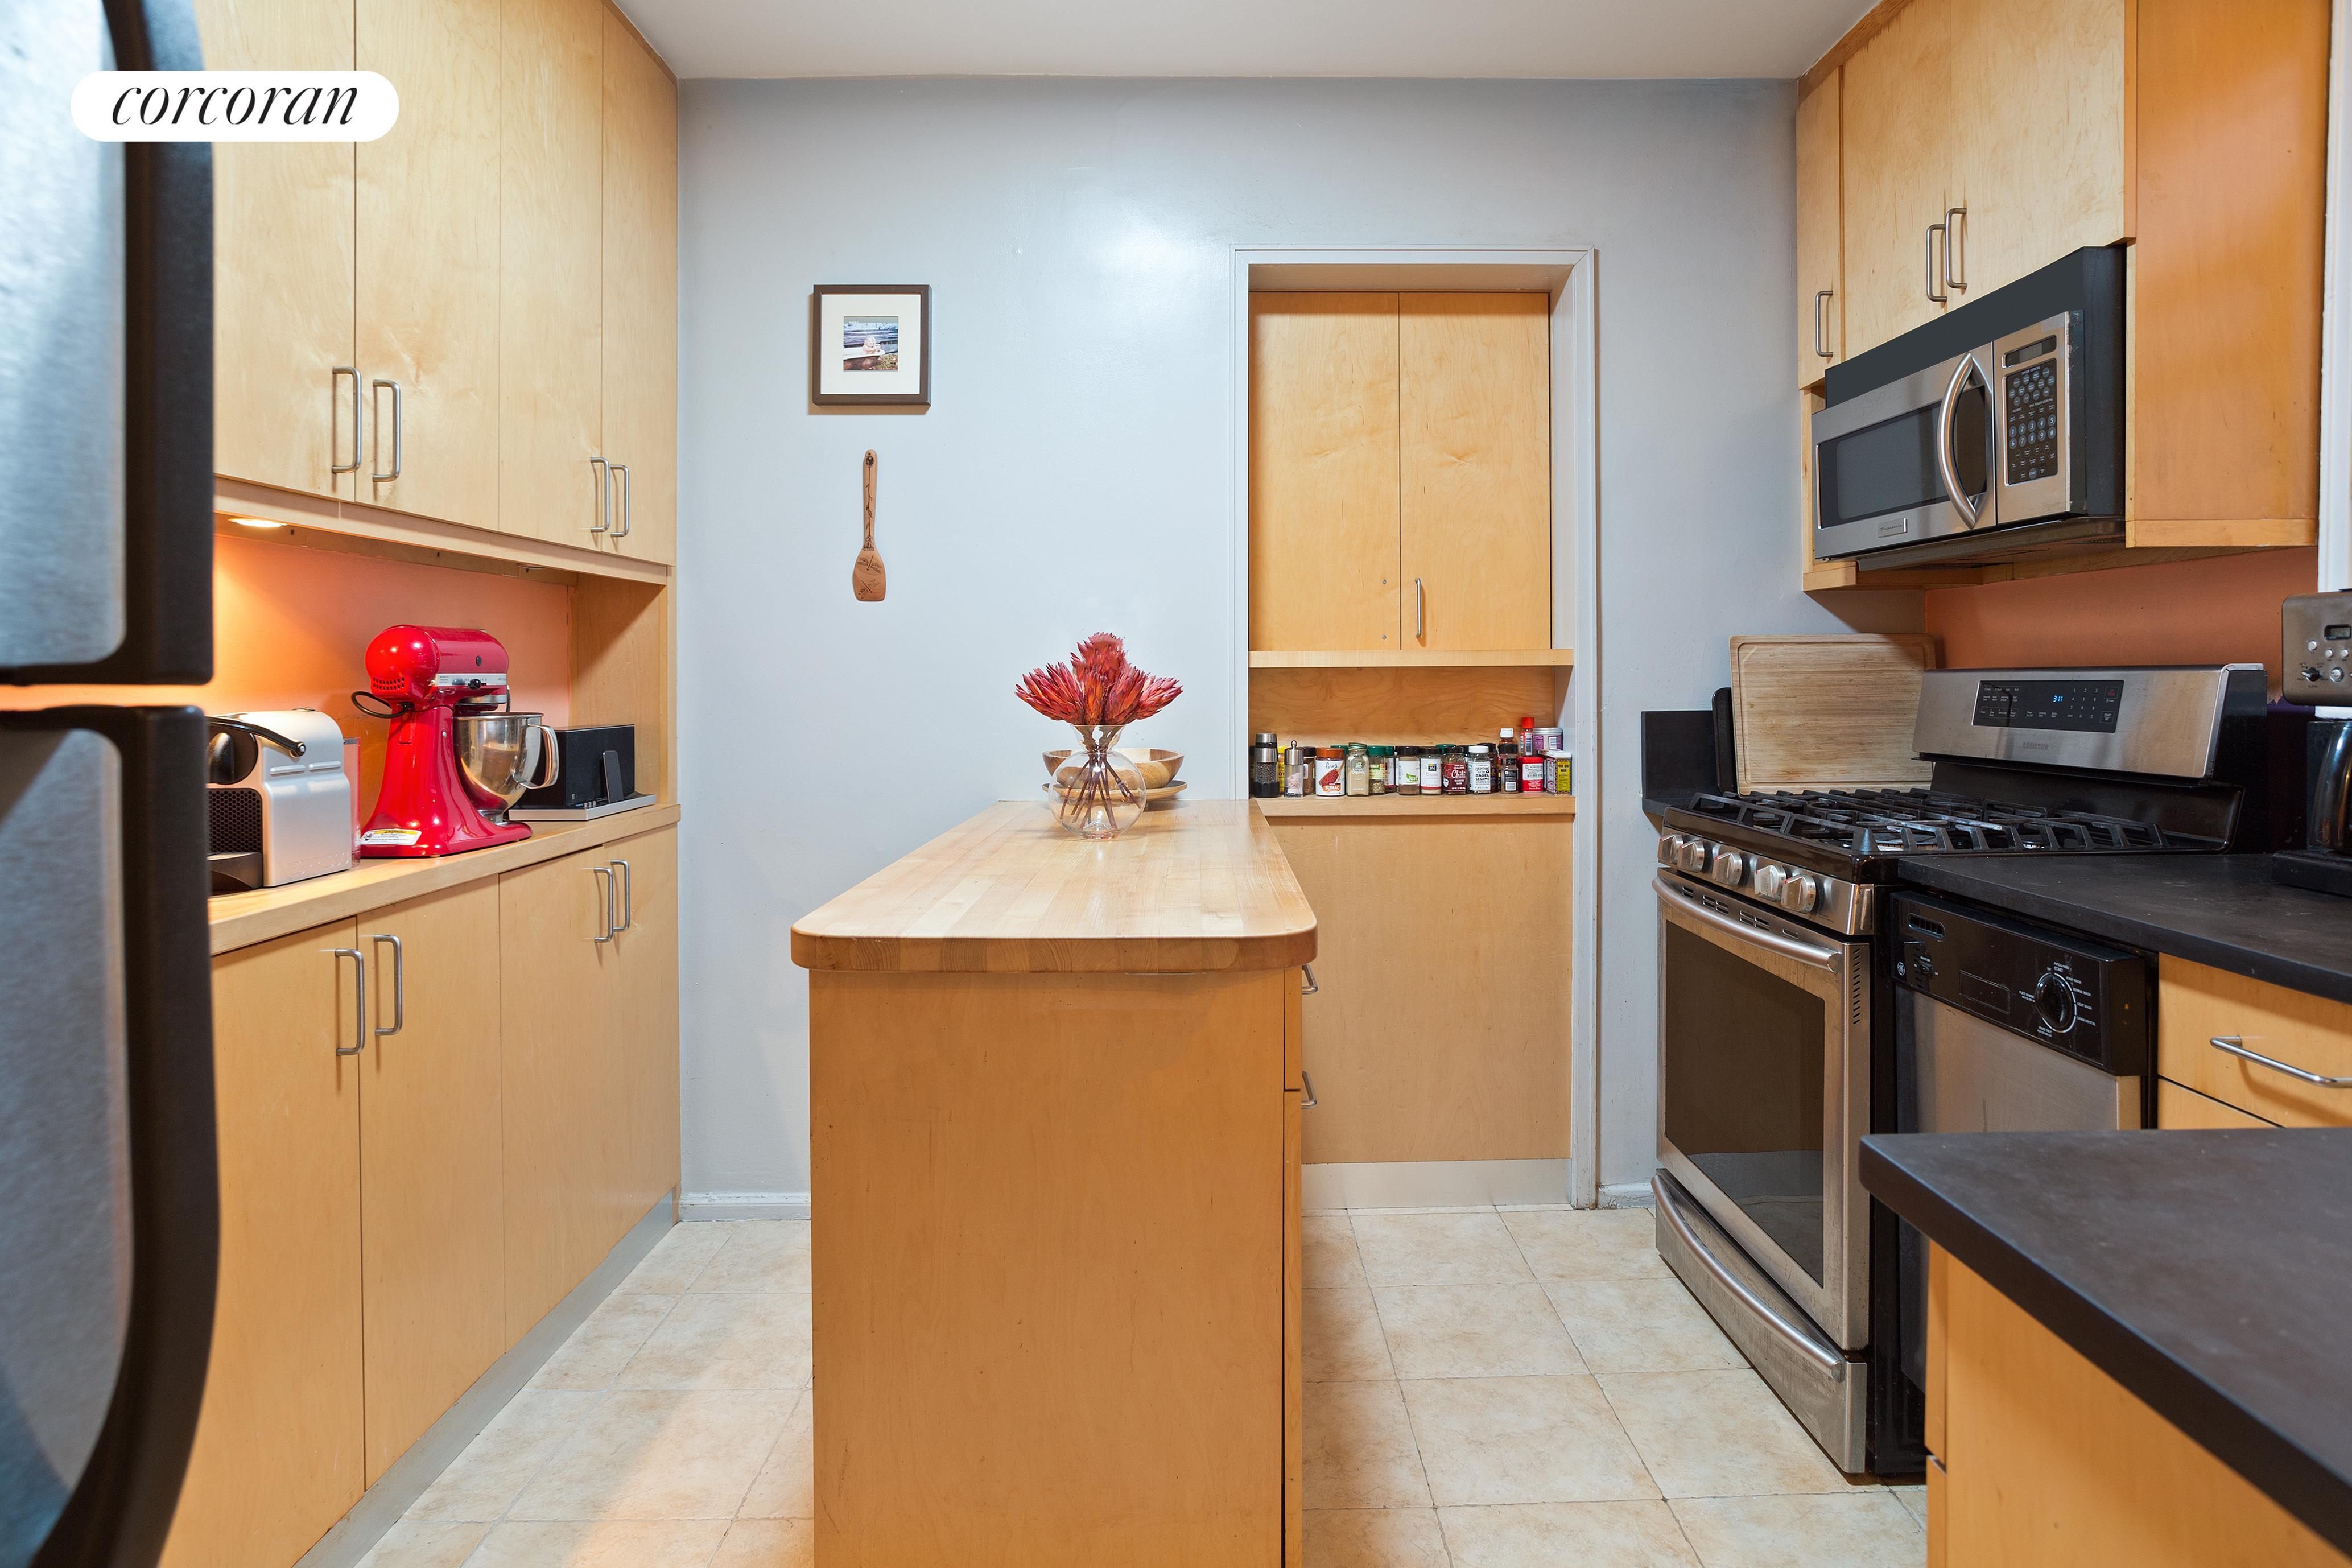 Apartment for sale at 110 Ocean Parkway, Apt 2D